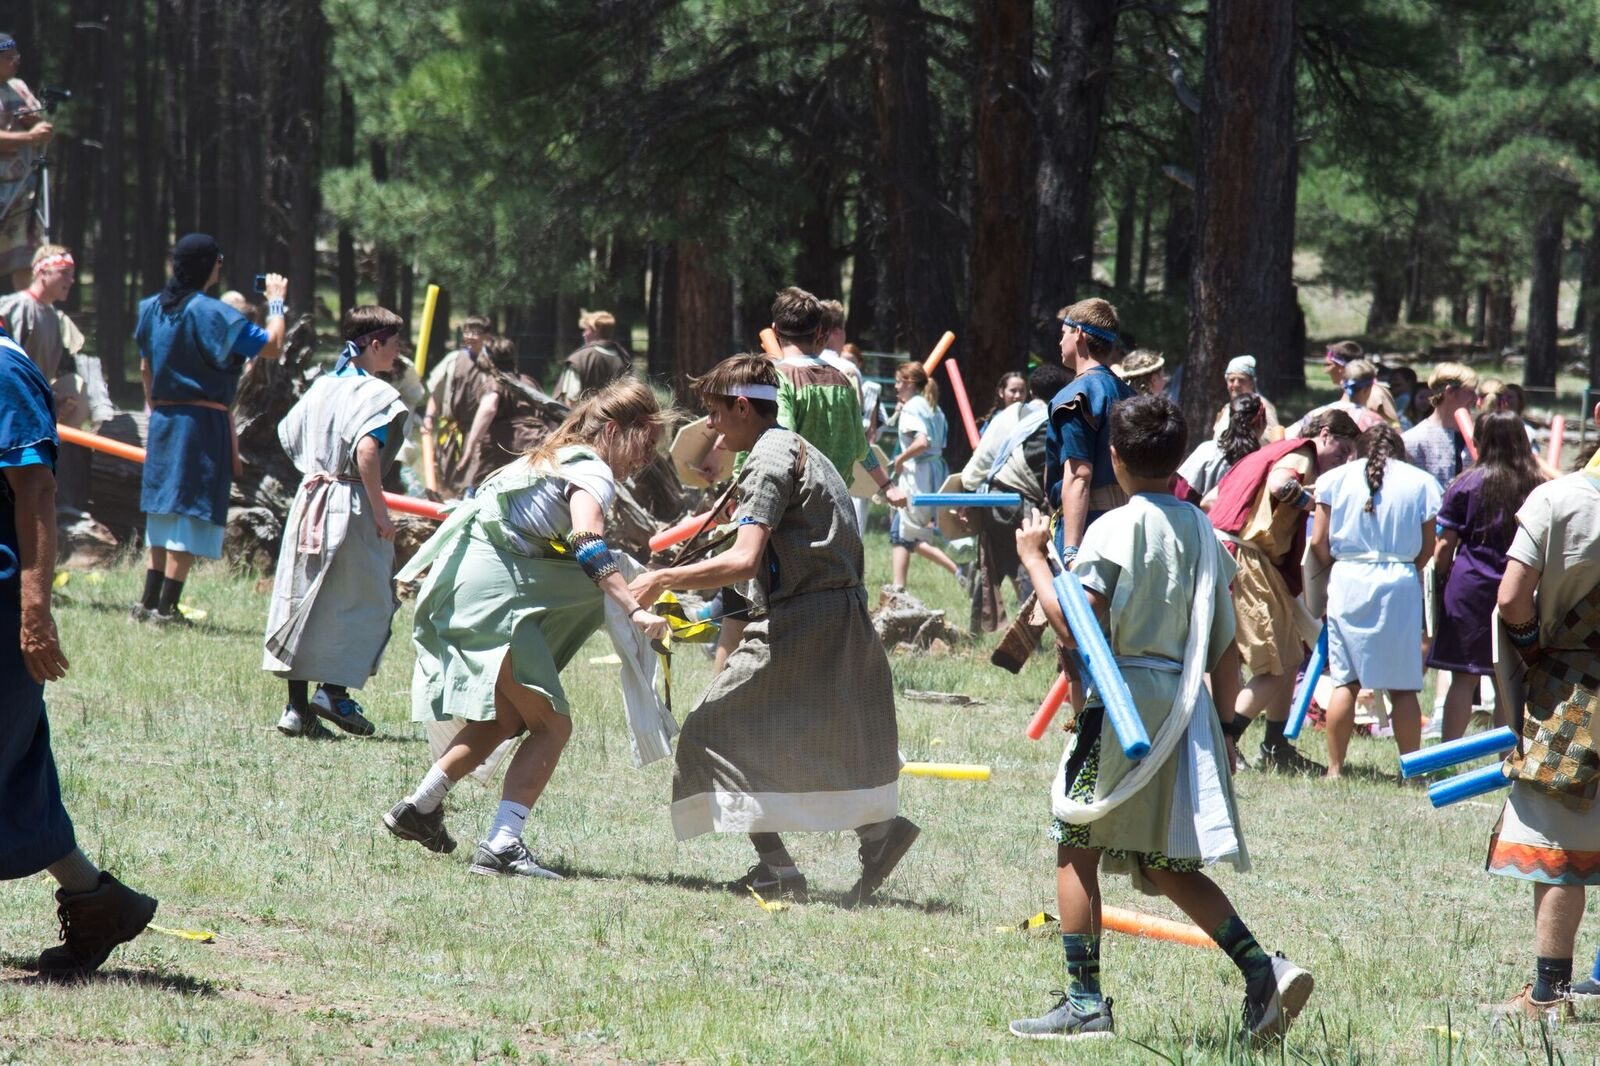 Lehi Youth – A Battle Between The Nephites And Lamanites. Photo By Marci Shill